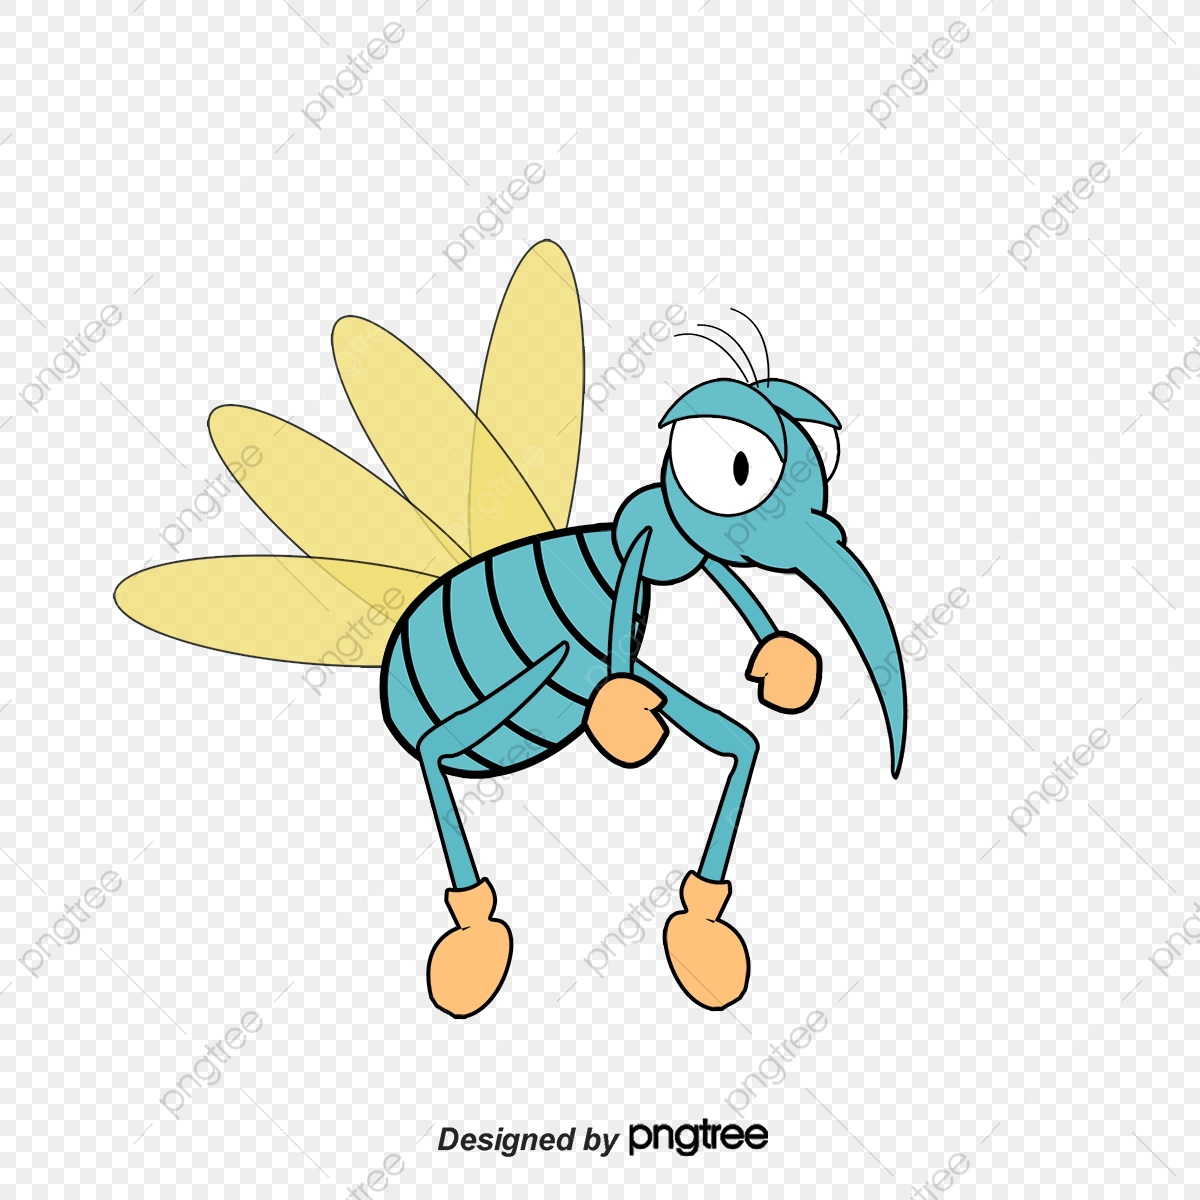 Mosquito clipart file. Insect png transparent